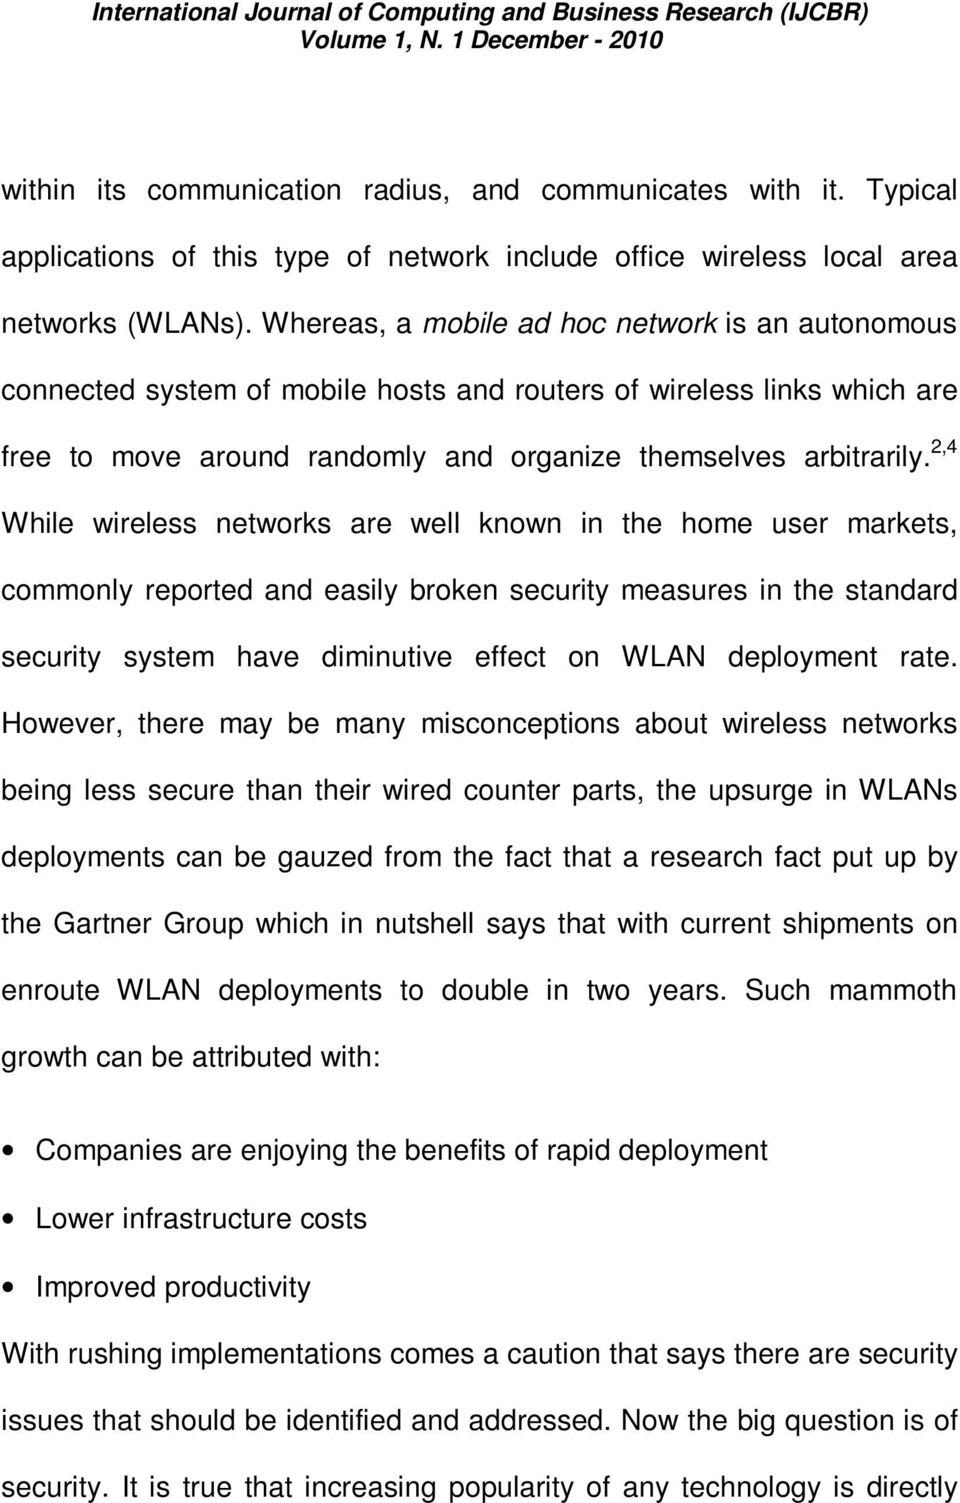 2,4 While wireless networks are well known in the home user markets, commonly reported and easily broken security measures in the standard security system have diminutive effect on WLAN deployment